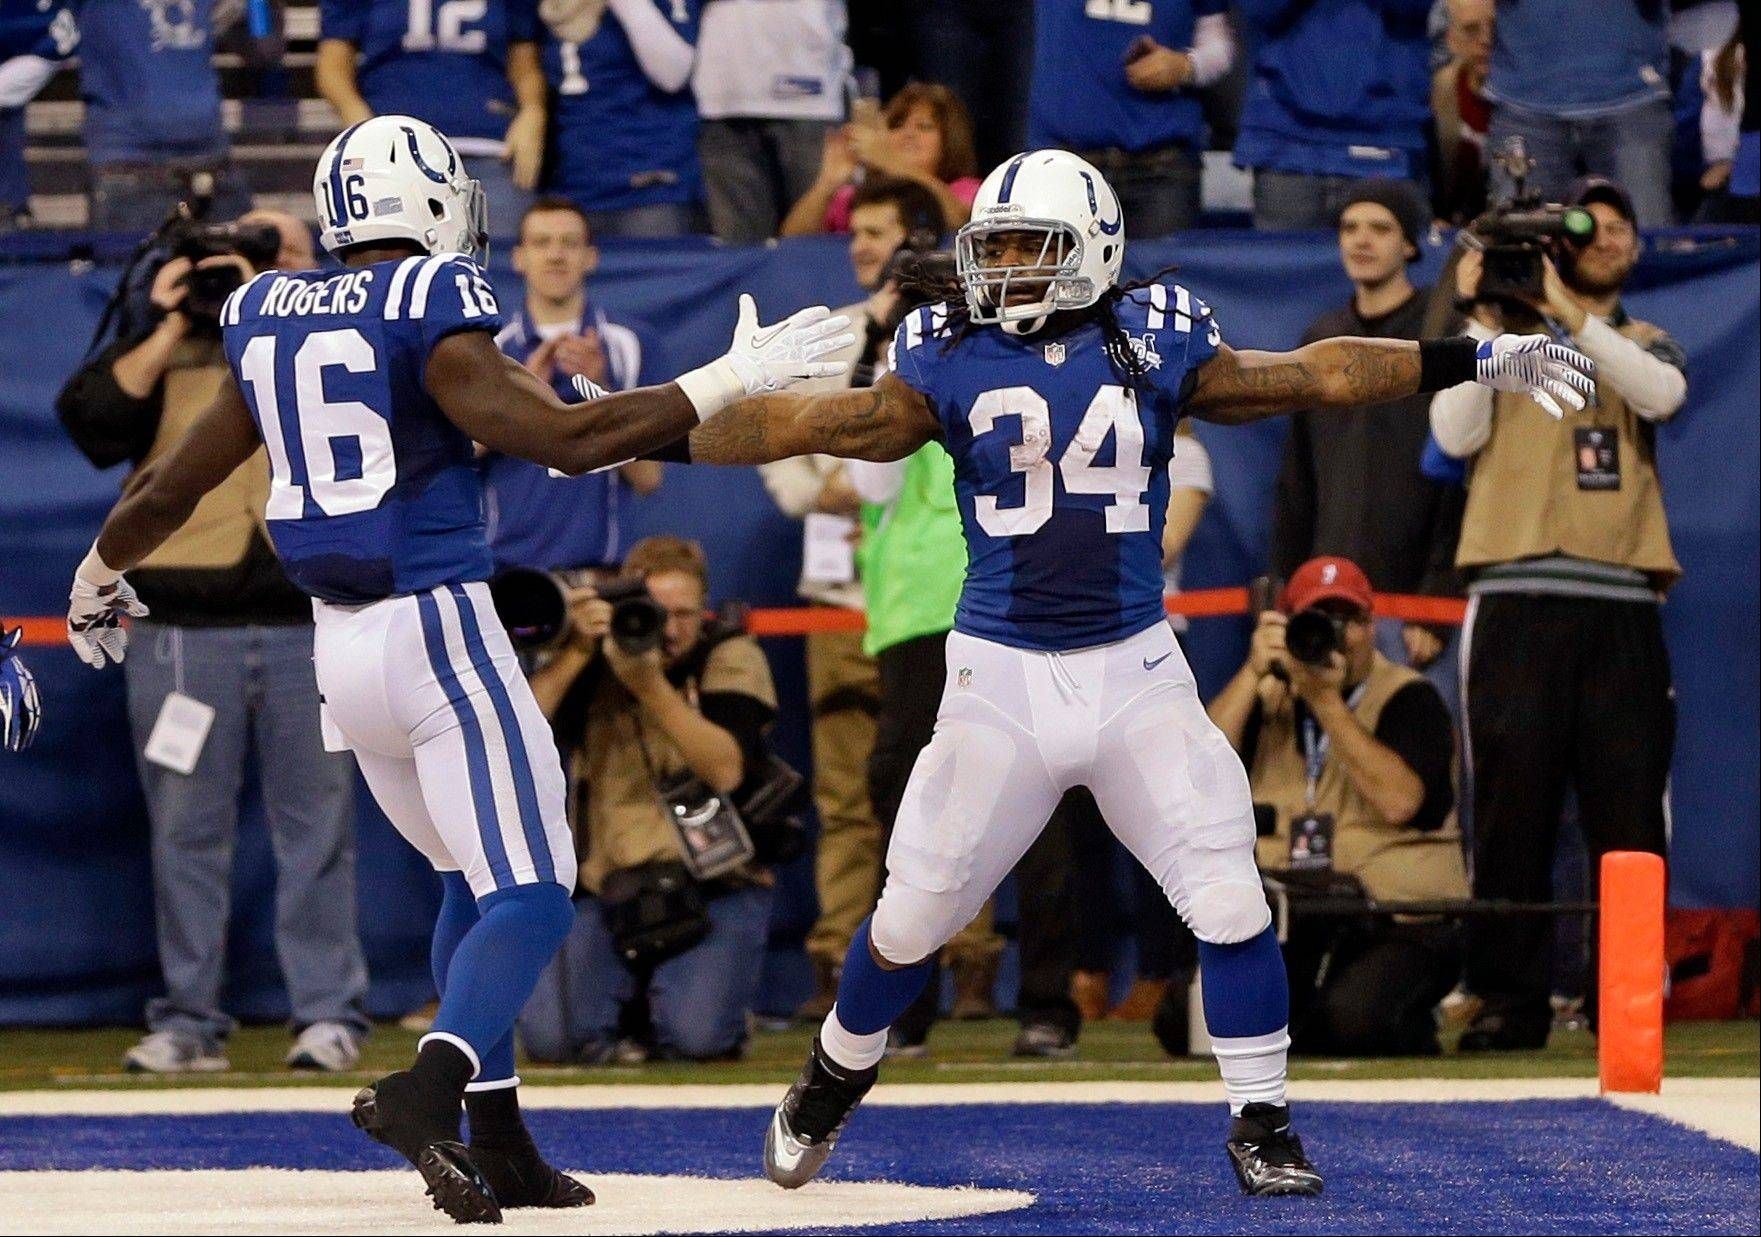 Indianapolis Colts running back Trent Richardson, right, celebrates a touchdown against the Houston Texans with wide receiver Da�Rick Rogers during the first half of an NFL football game in Indianapolis, Sunday, Dec. 15, 2013.